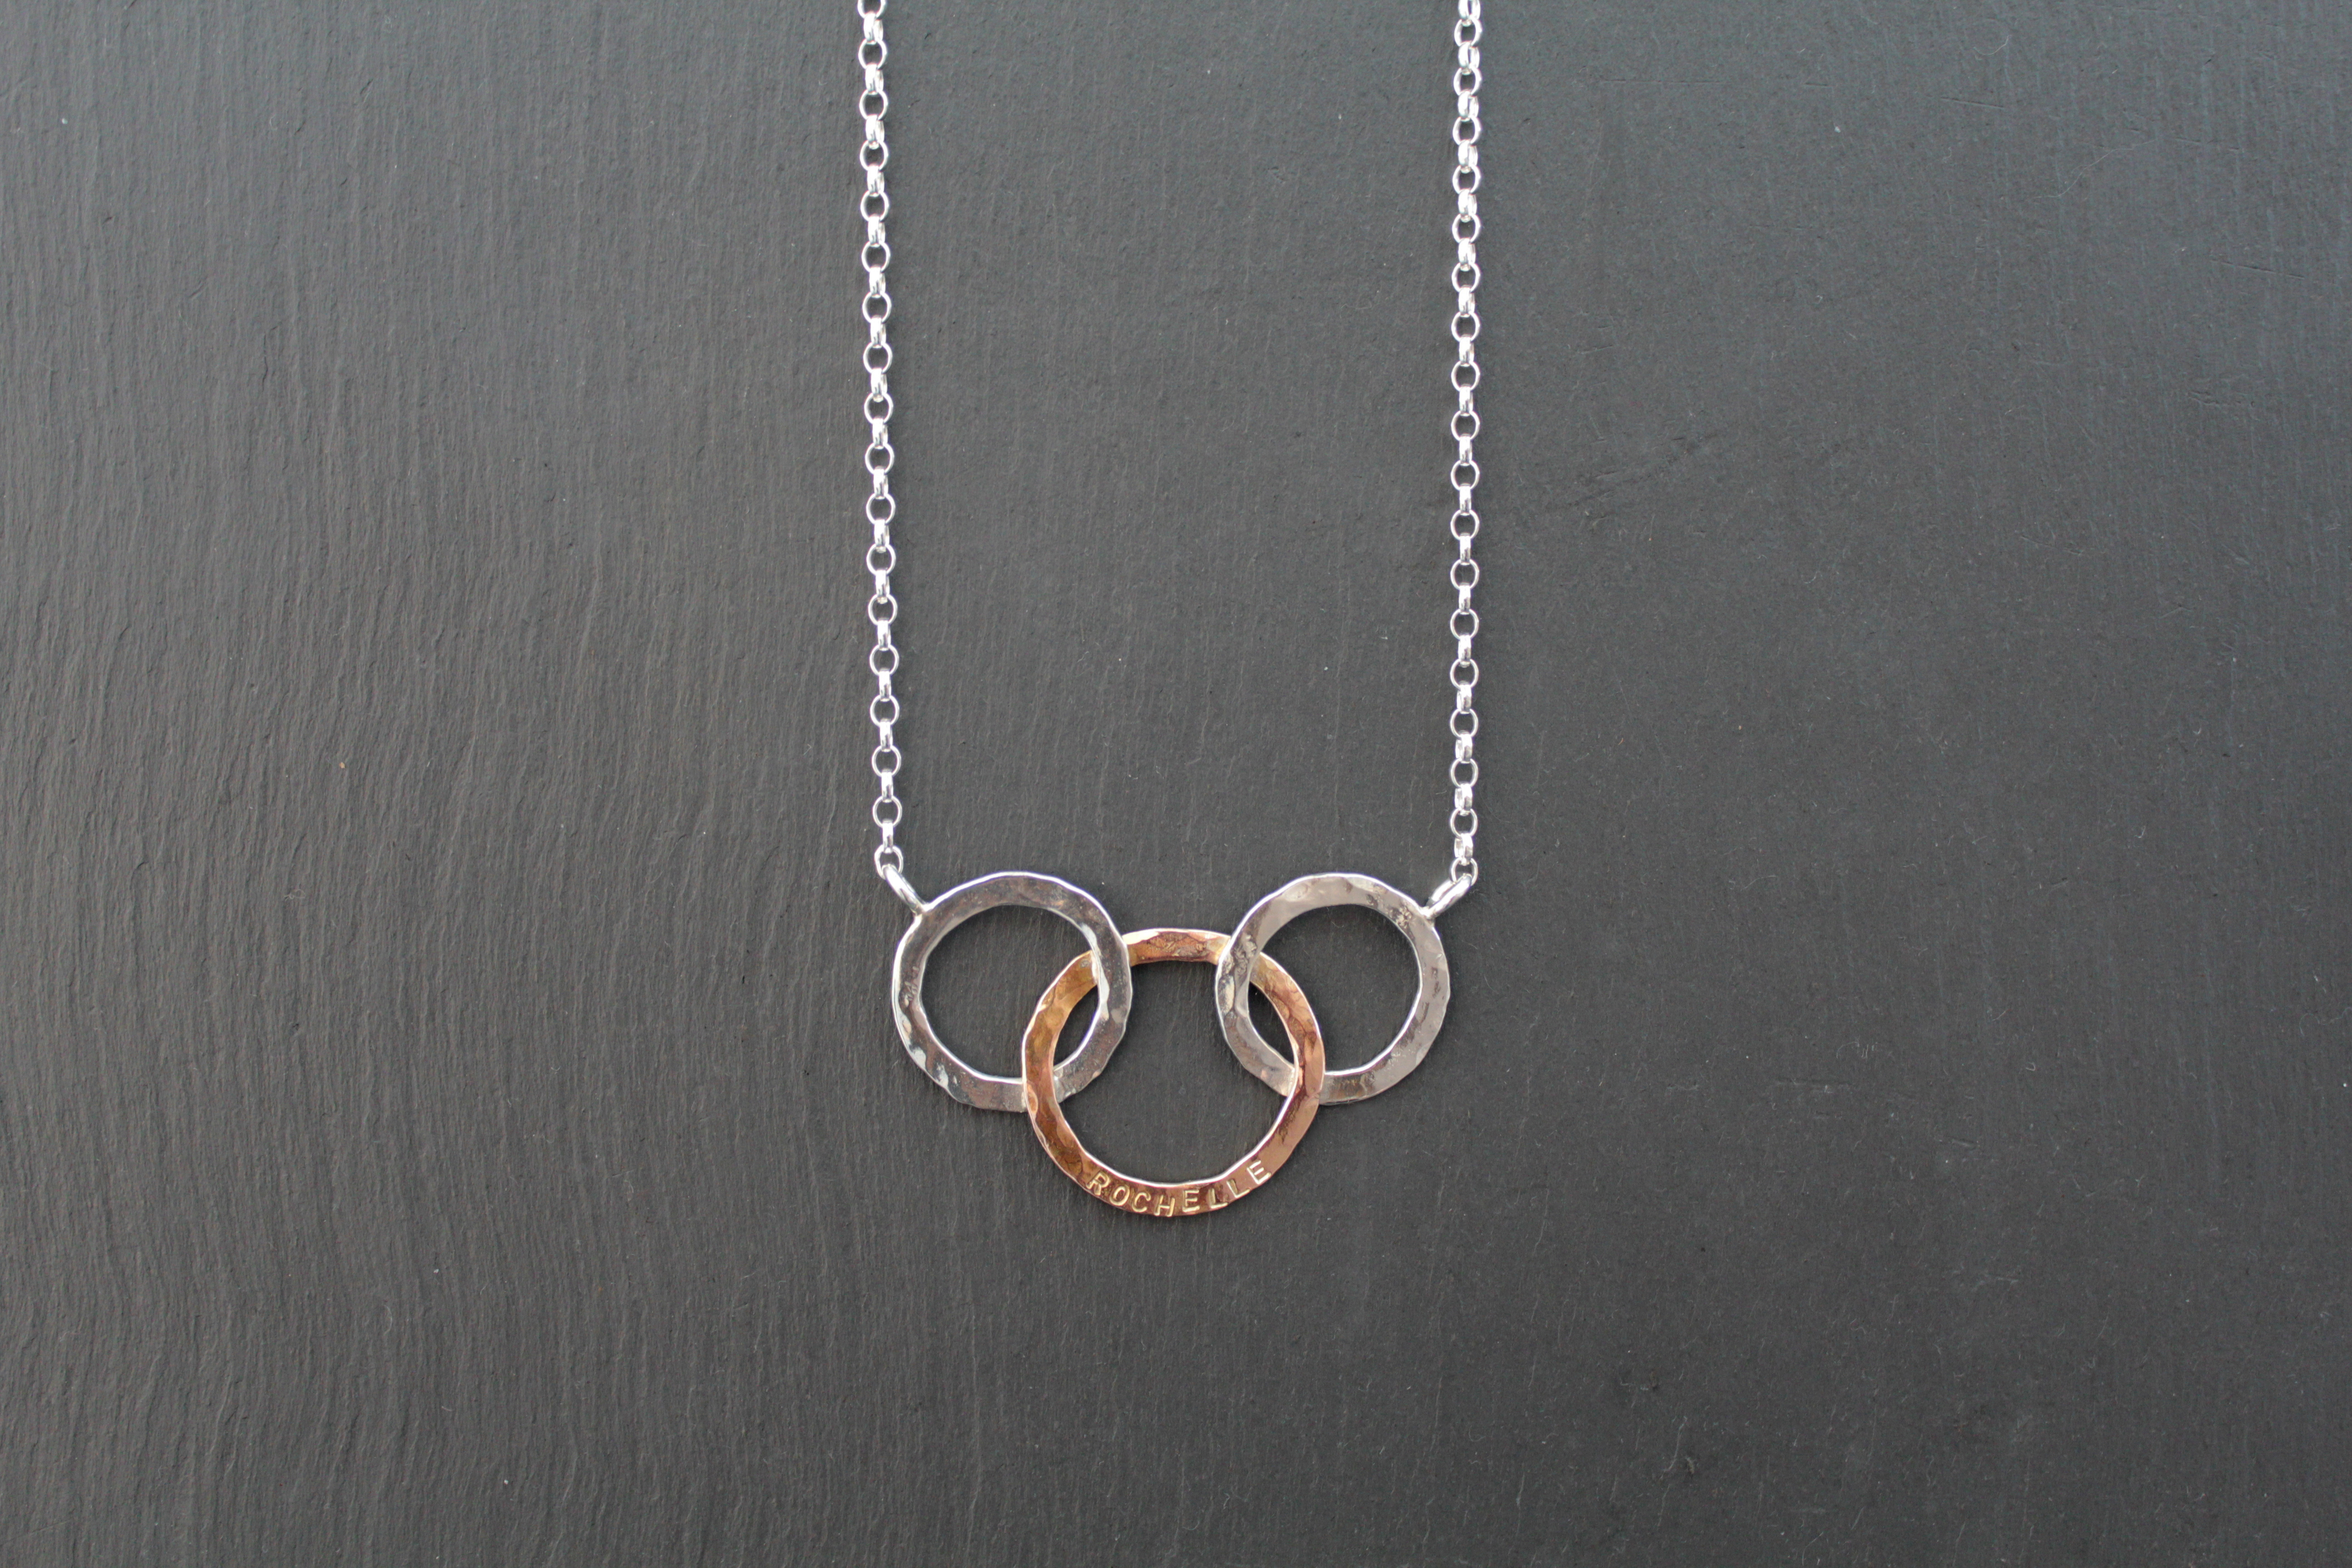 9ct Rose Gold and Silver Necklace